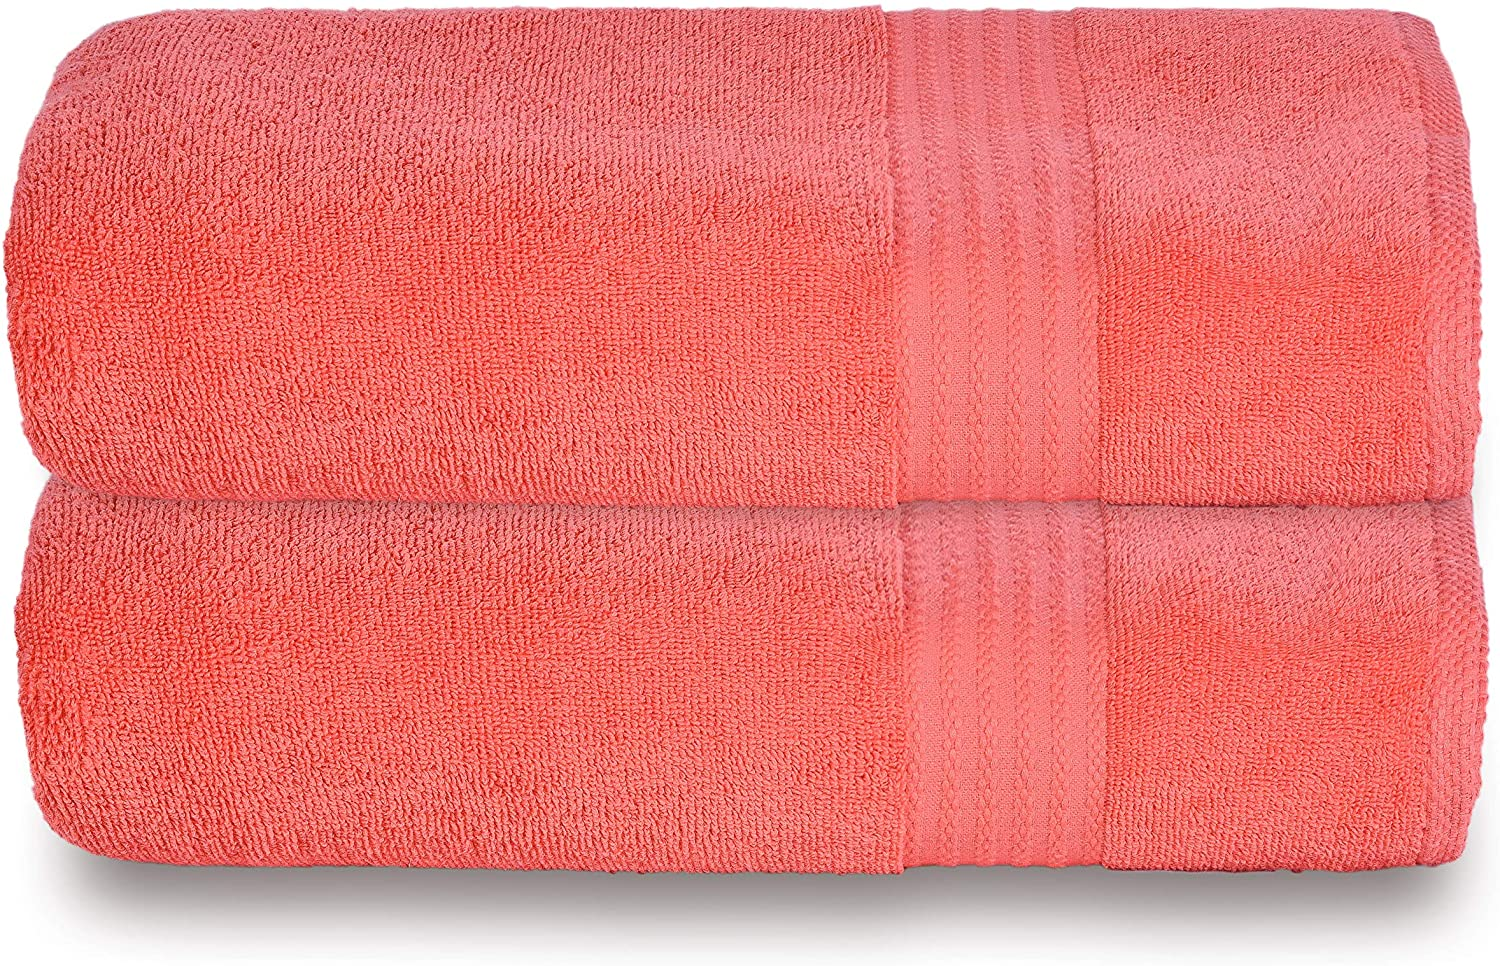 Glamburg Premium Cotton Oversized 2 Pack Bath Sheet 35x70 - 100% Pure Cotton - Ideal for Everyday use - Ultra Soft & Highly Absorbent - Machine Washable - Coral Living: Kitchen & Dining